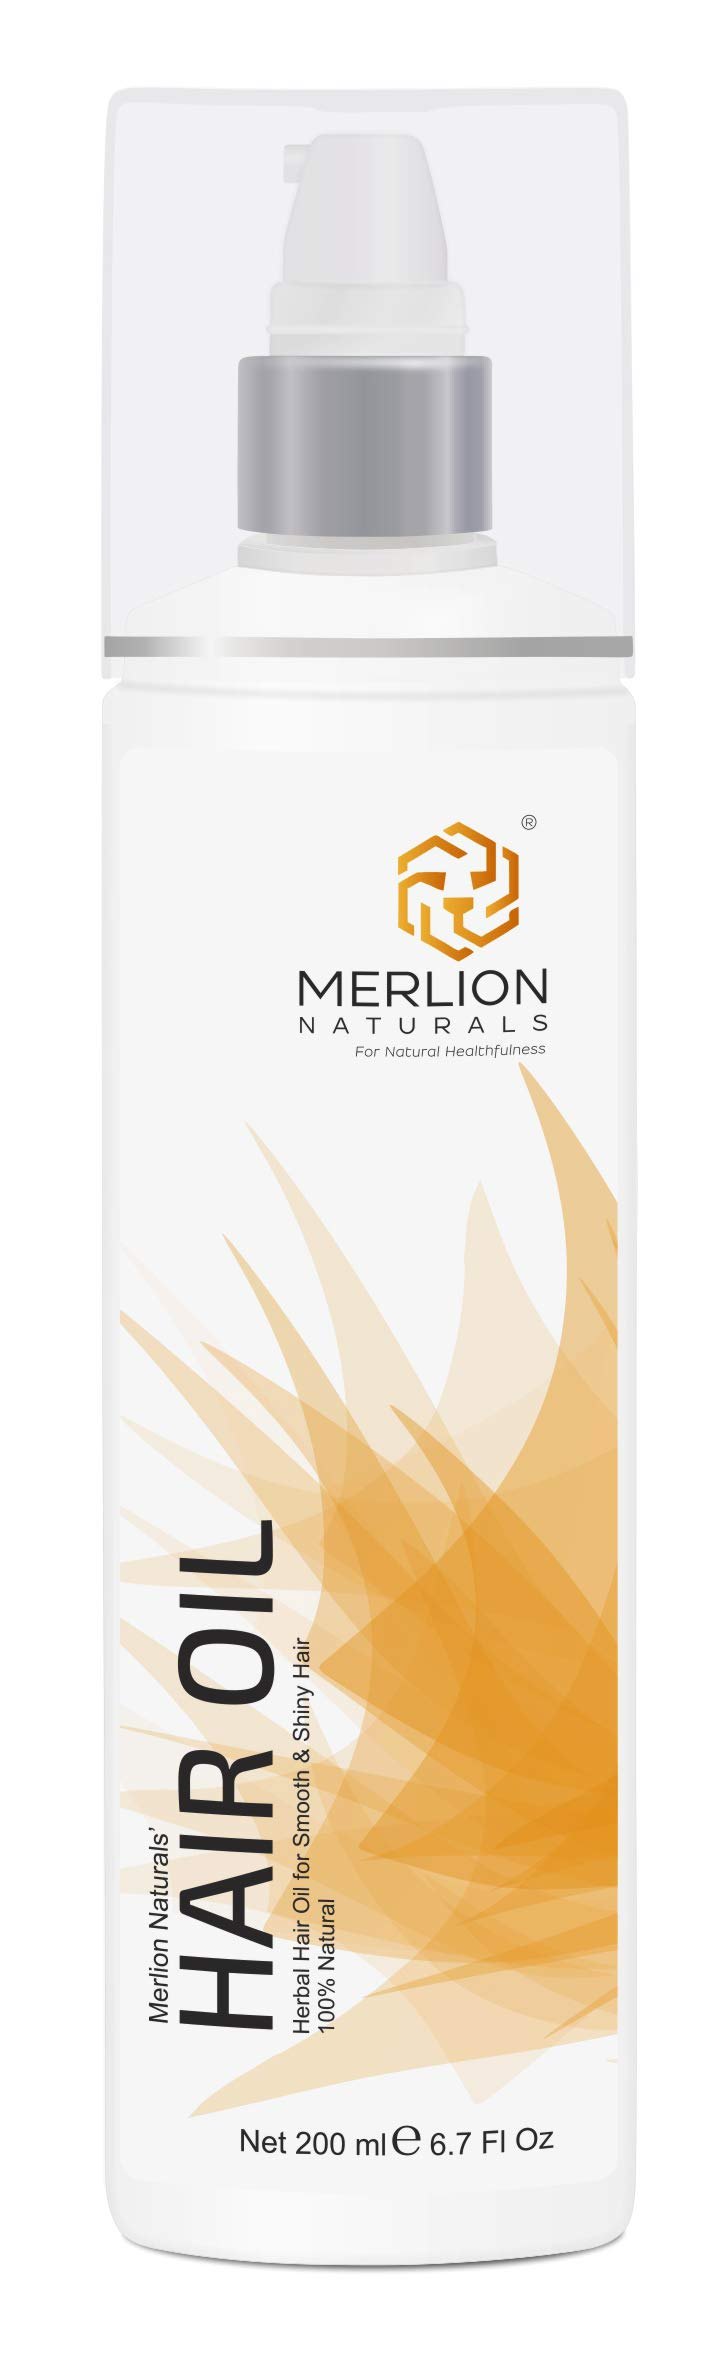 Herbal Hair Oil by Merlion Naturals   12 Essential Herbs like Amla, Virgin Coconut, Sesame seed   200ml/ 6.7OZ   100% Pure and Natural